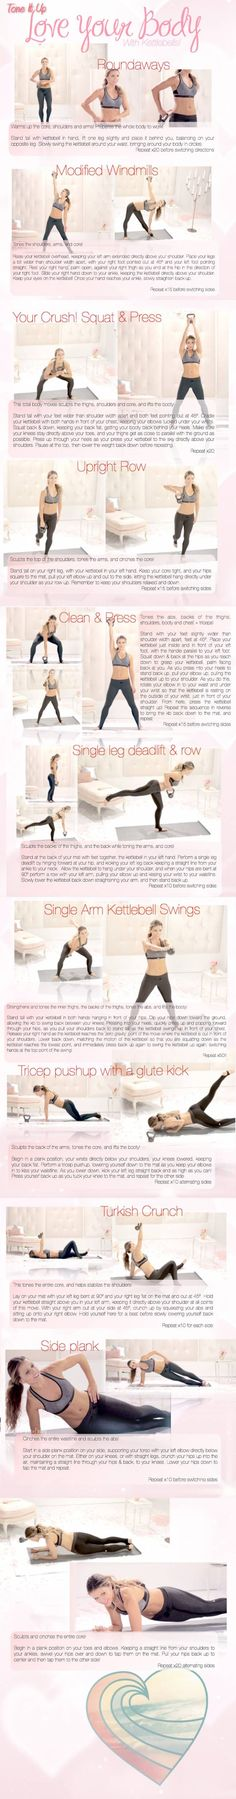 NEW Workout Video ~ Love Your Body with Kettlebells!